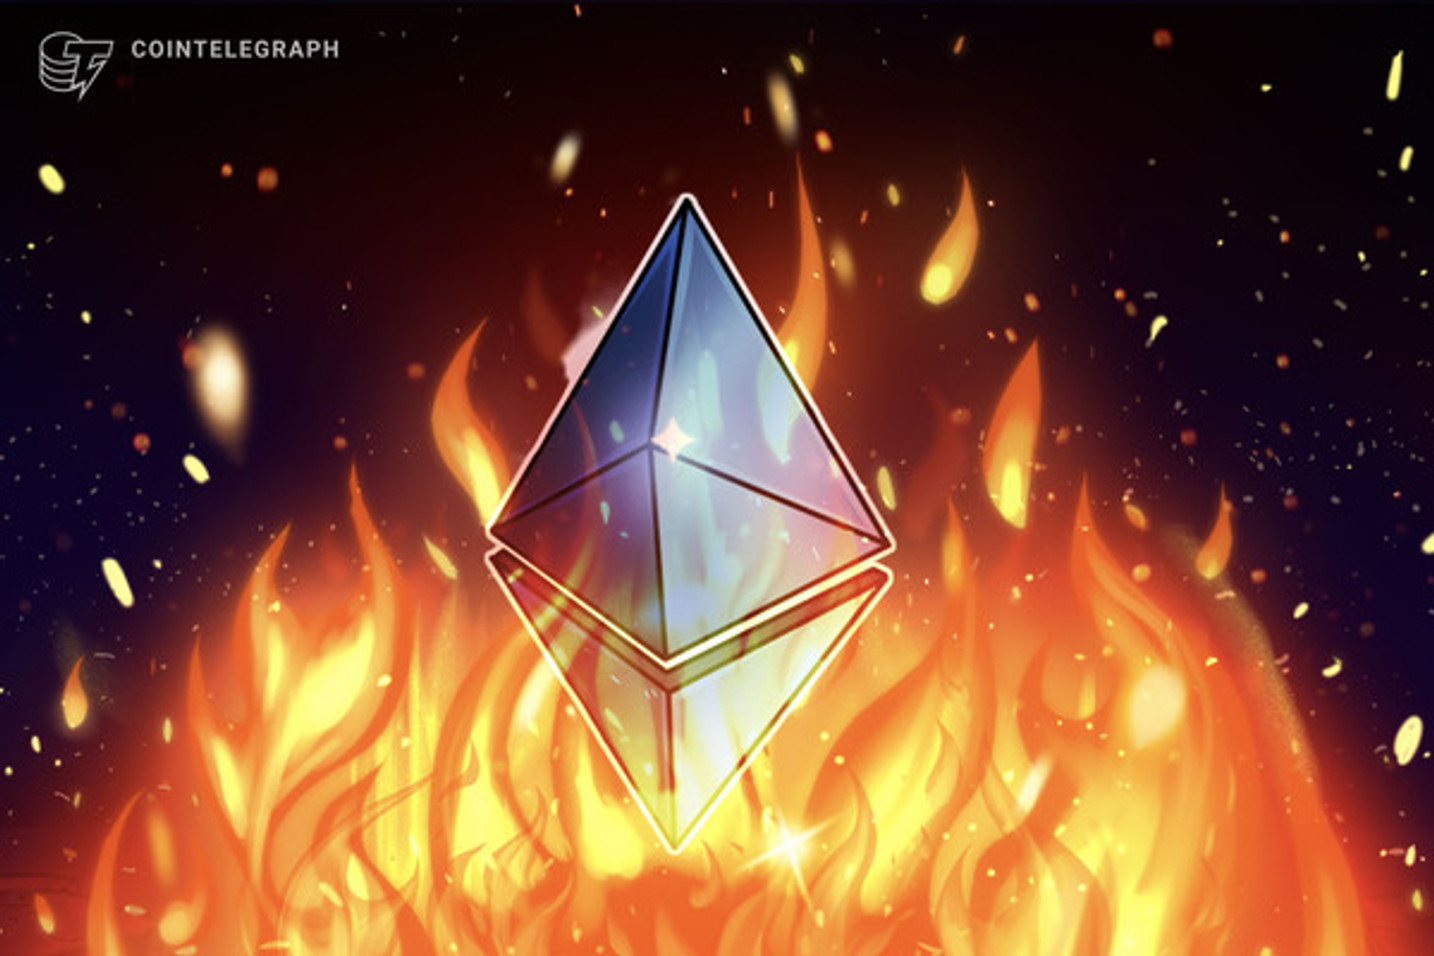 Almost 1M Ether would have been burnt in past year if fee proposal approved